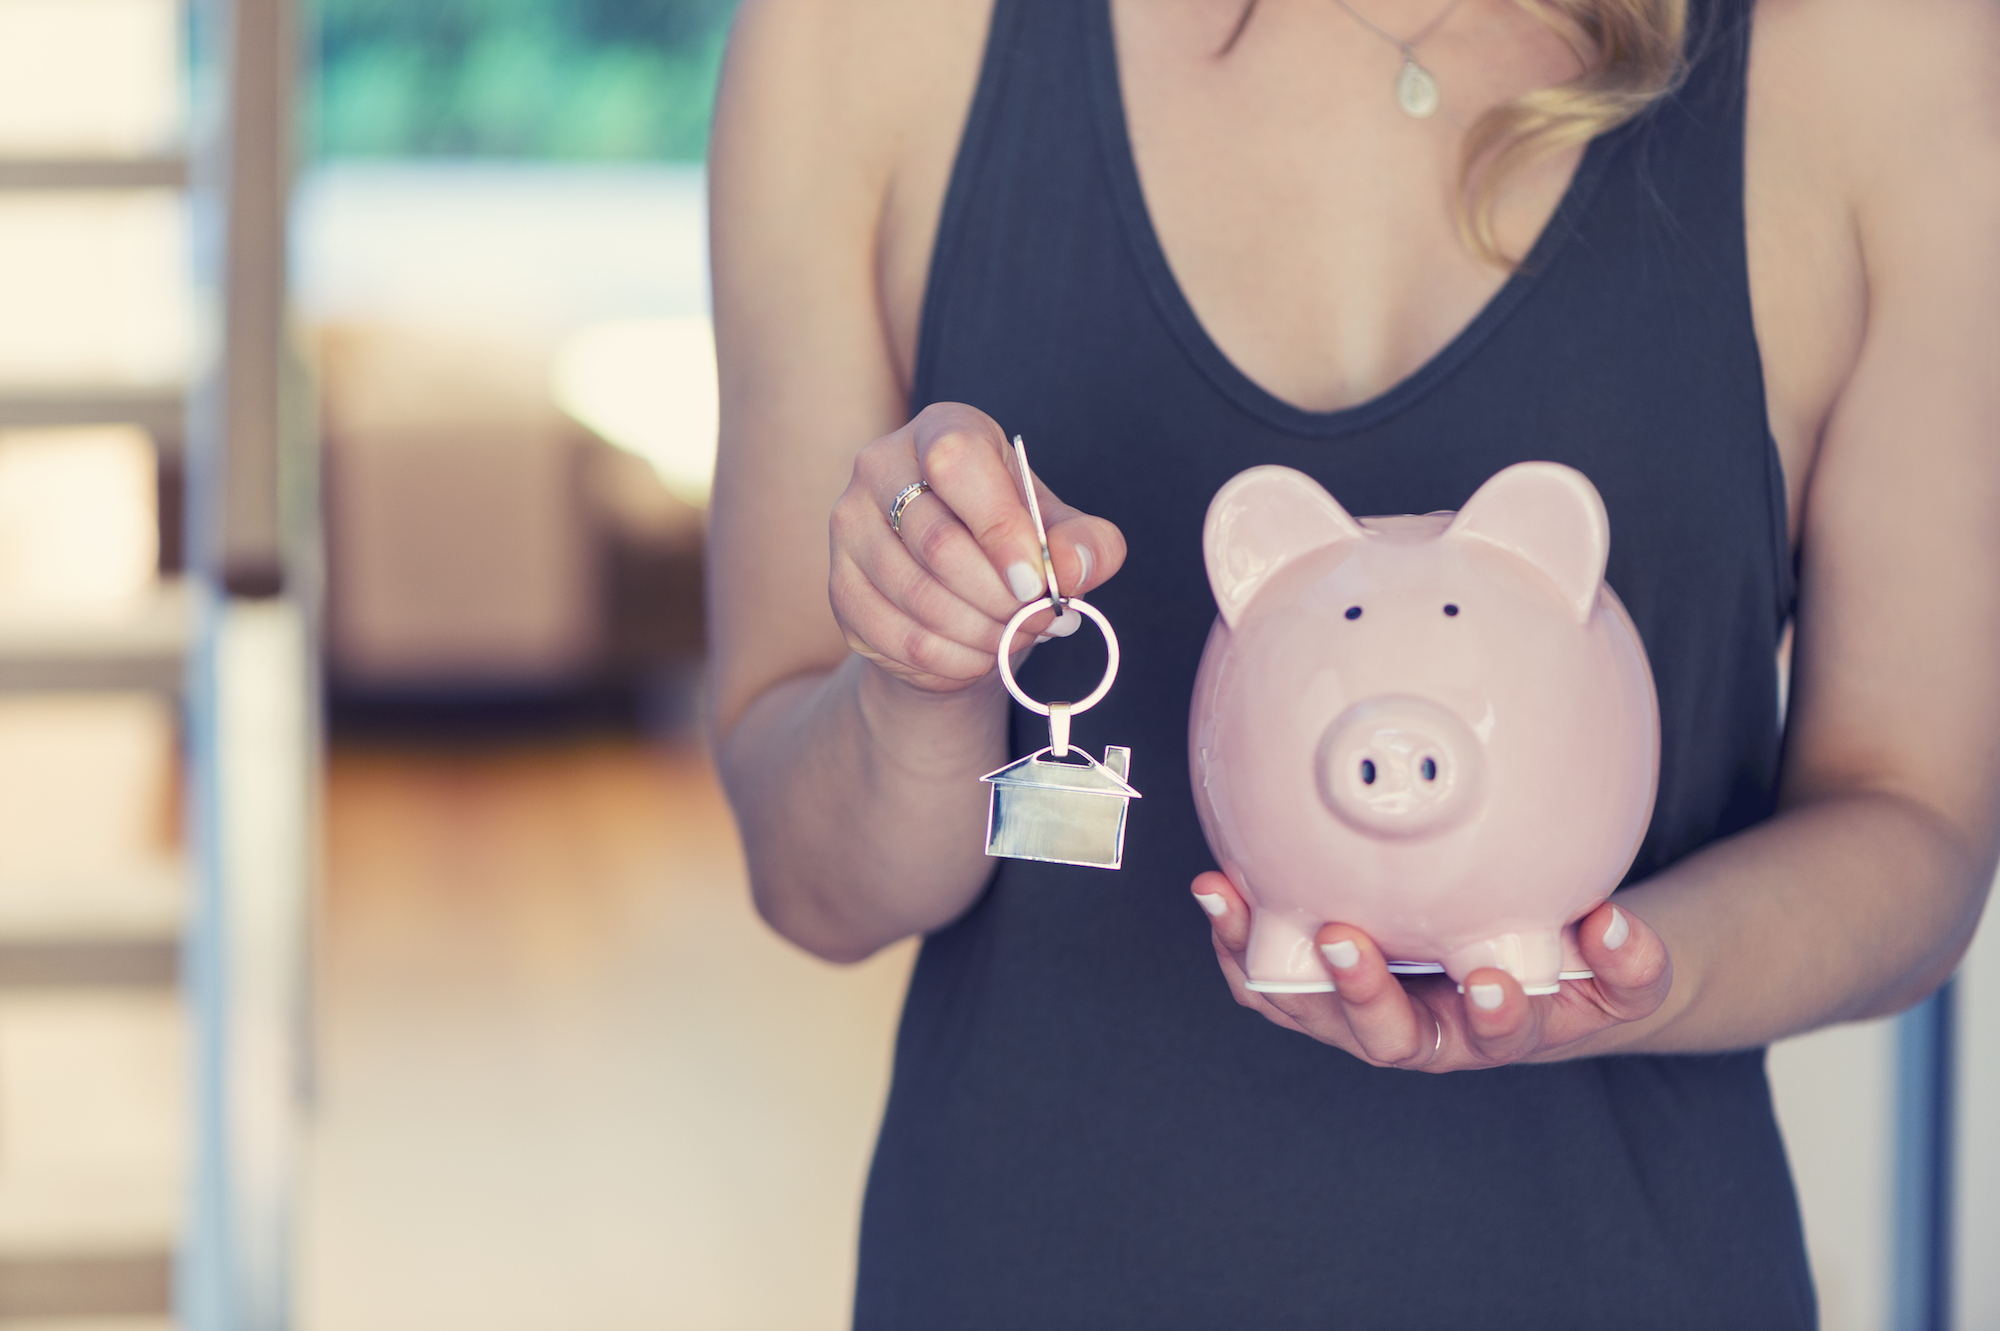 Woman holding house keys and a piggy bank. The key ring is house shaped. There is a home interior in the background. Home ownership and savings concept. Copy space.